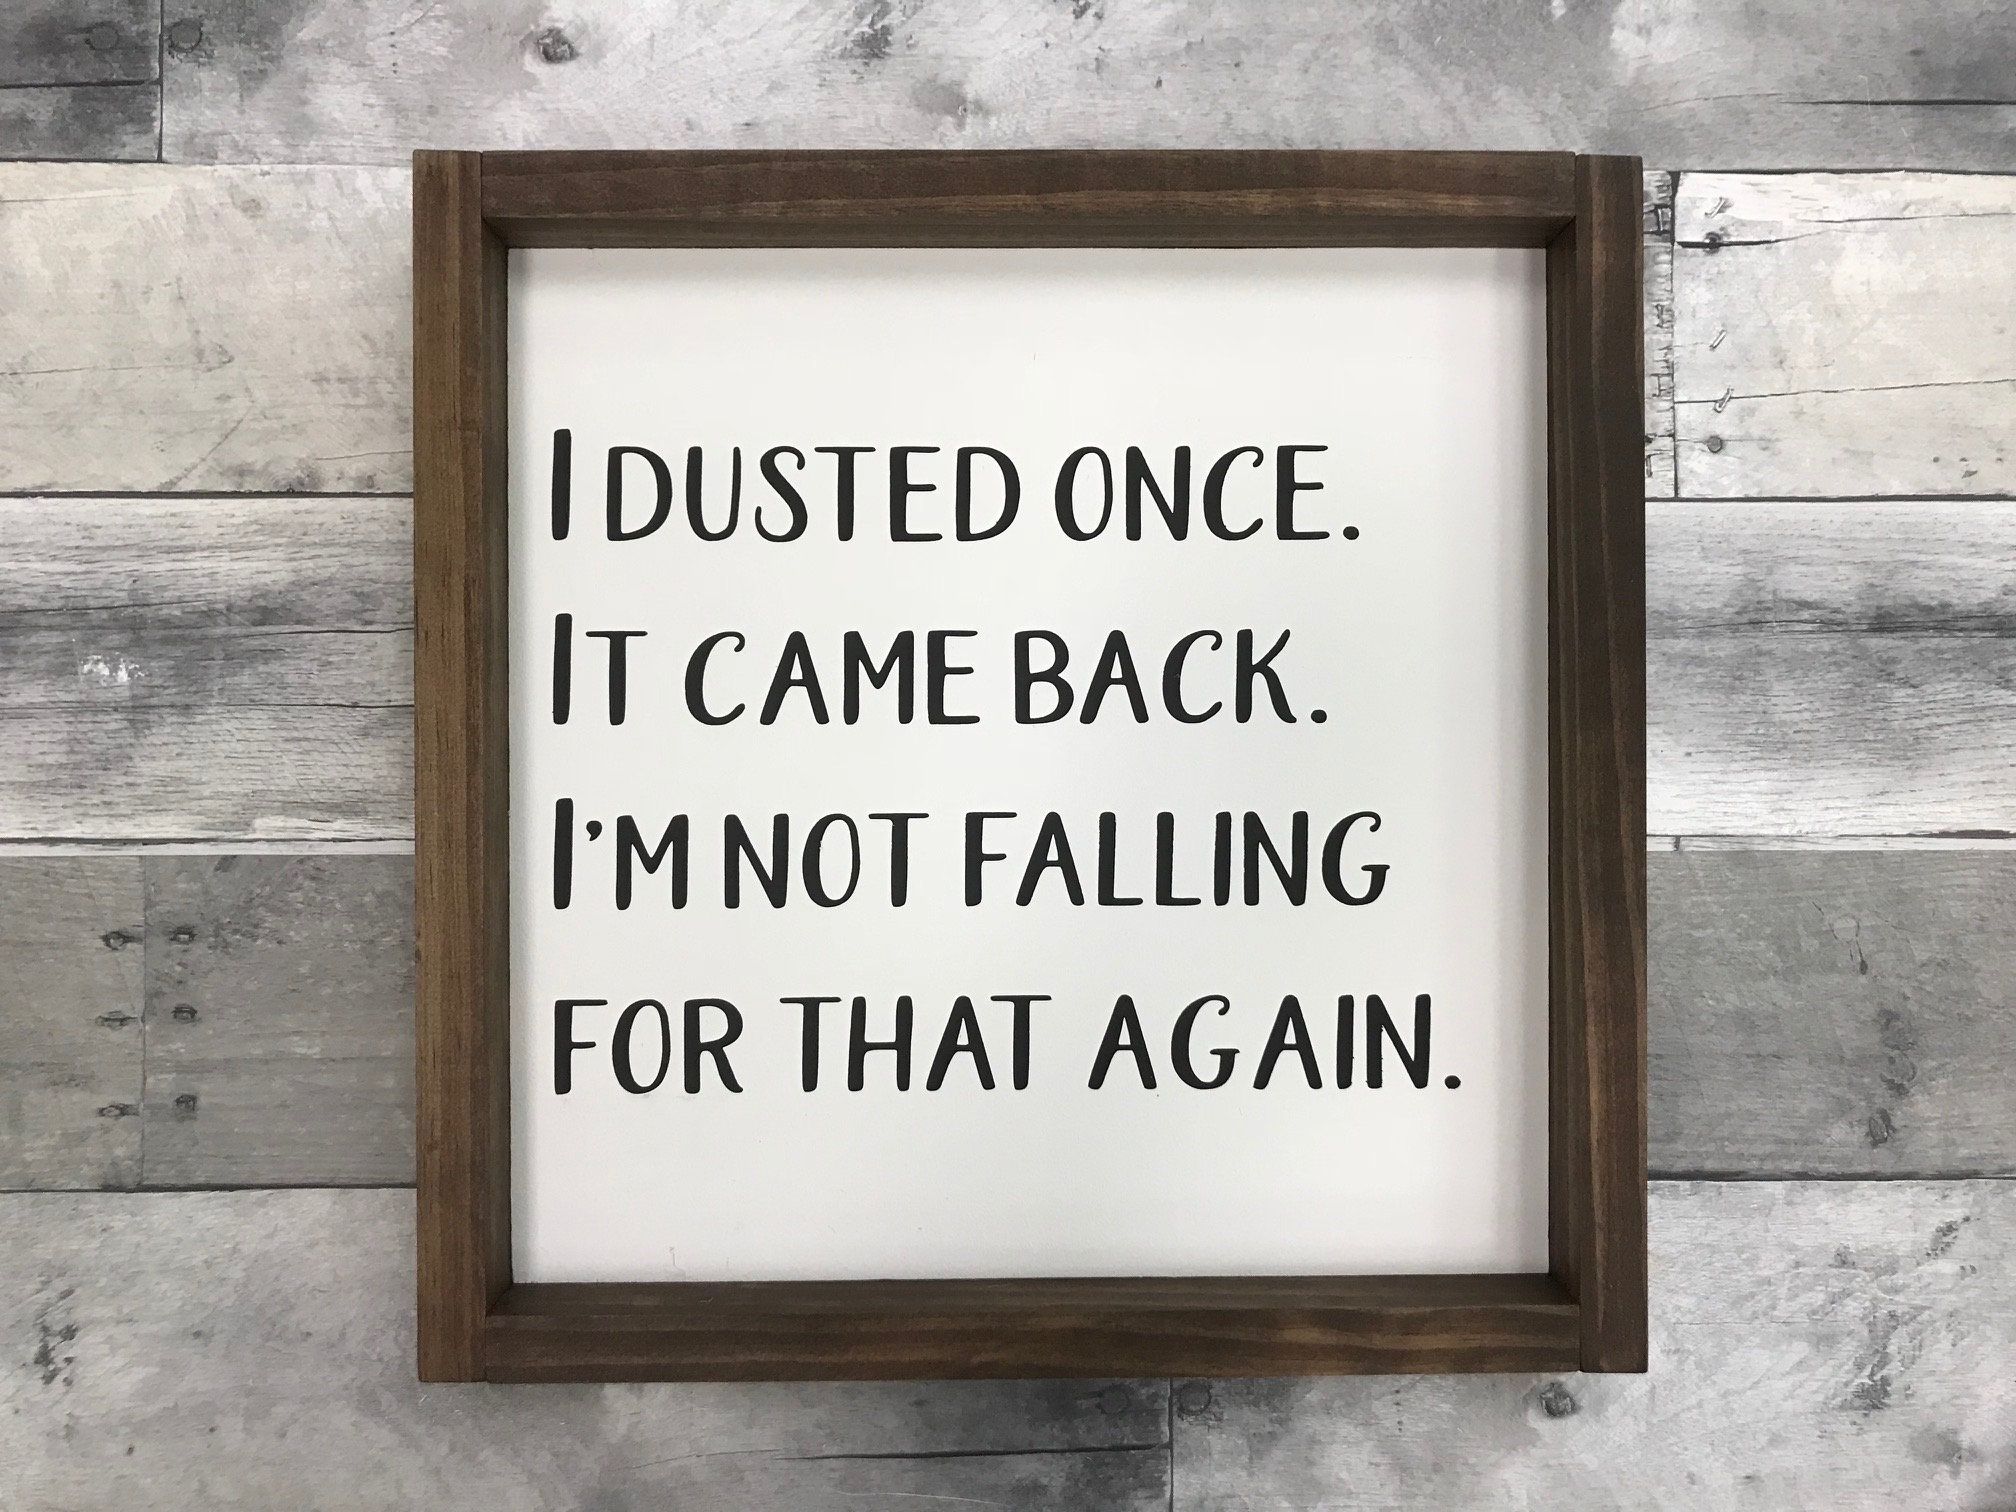 I dusted once it came back/ Funny Home sign/ Gift ideas